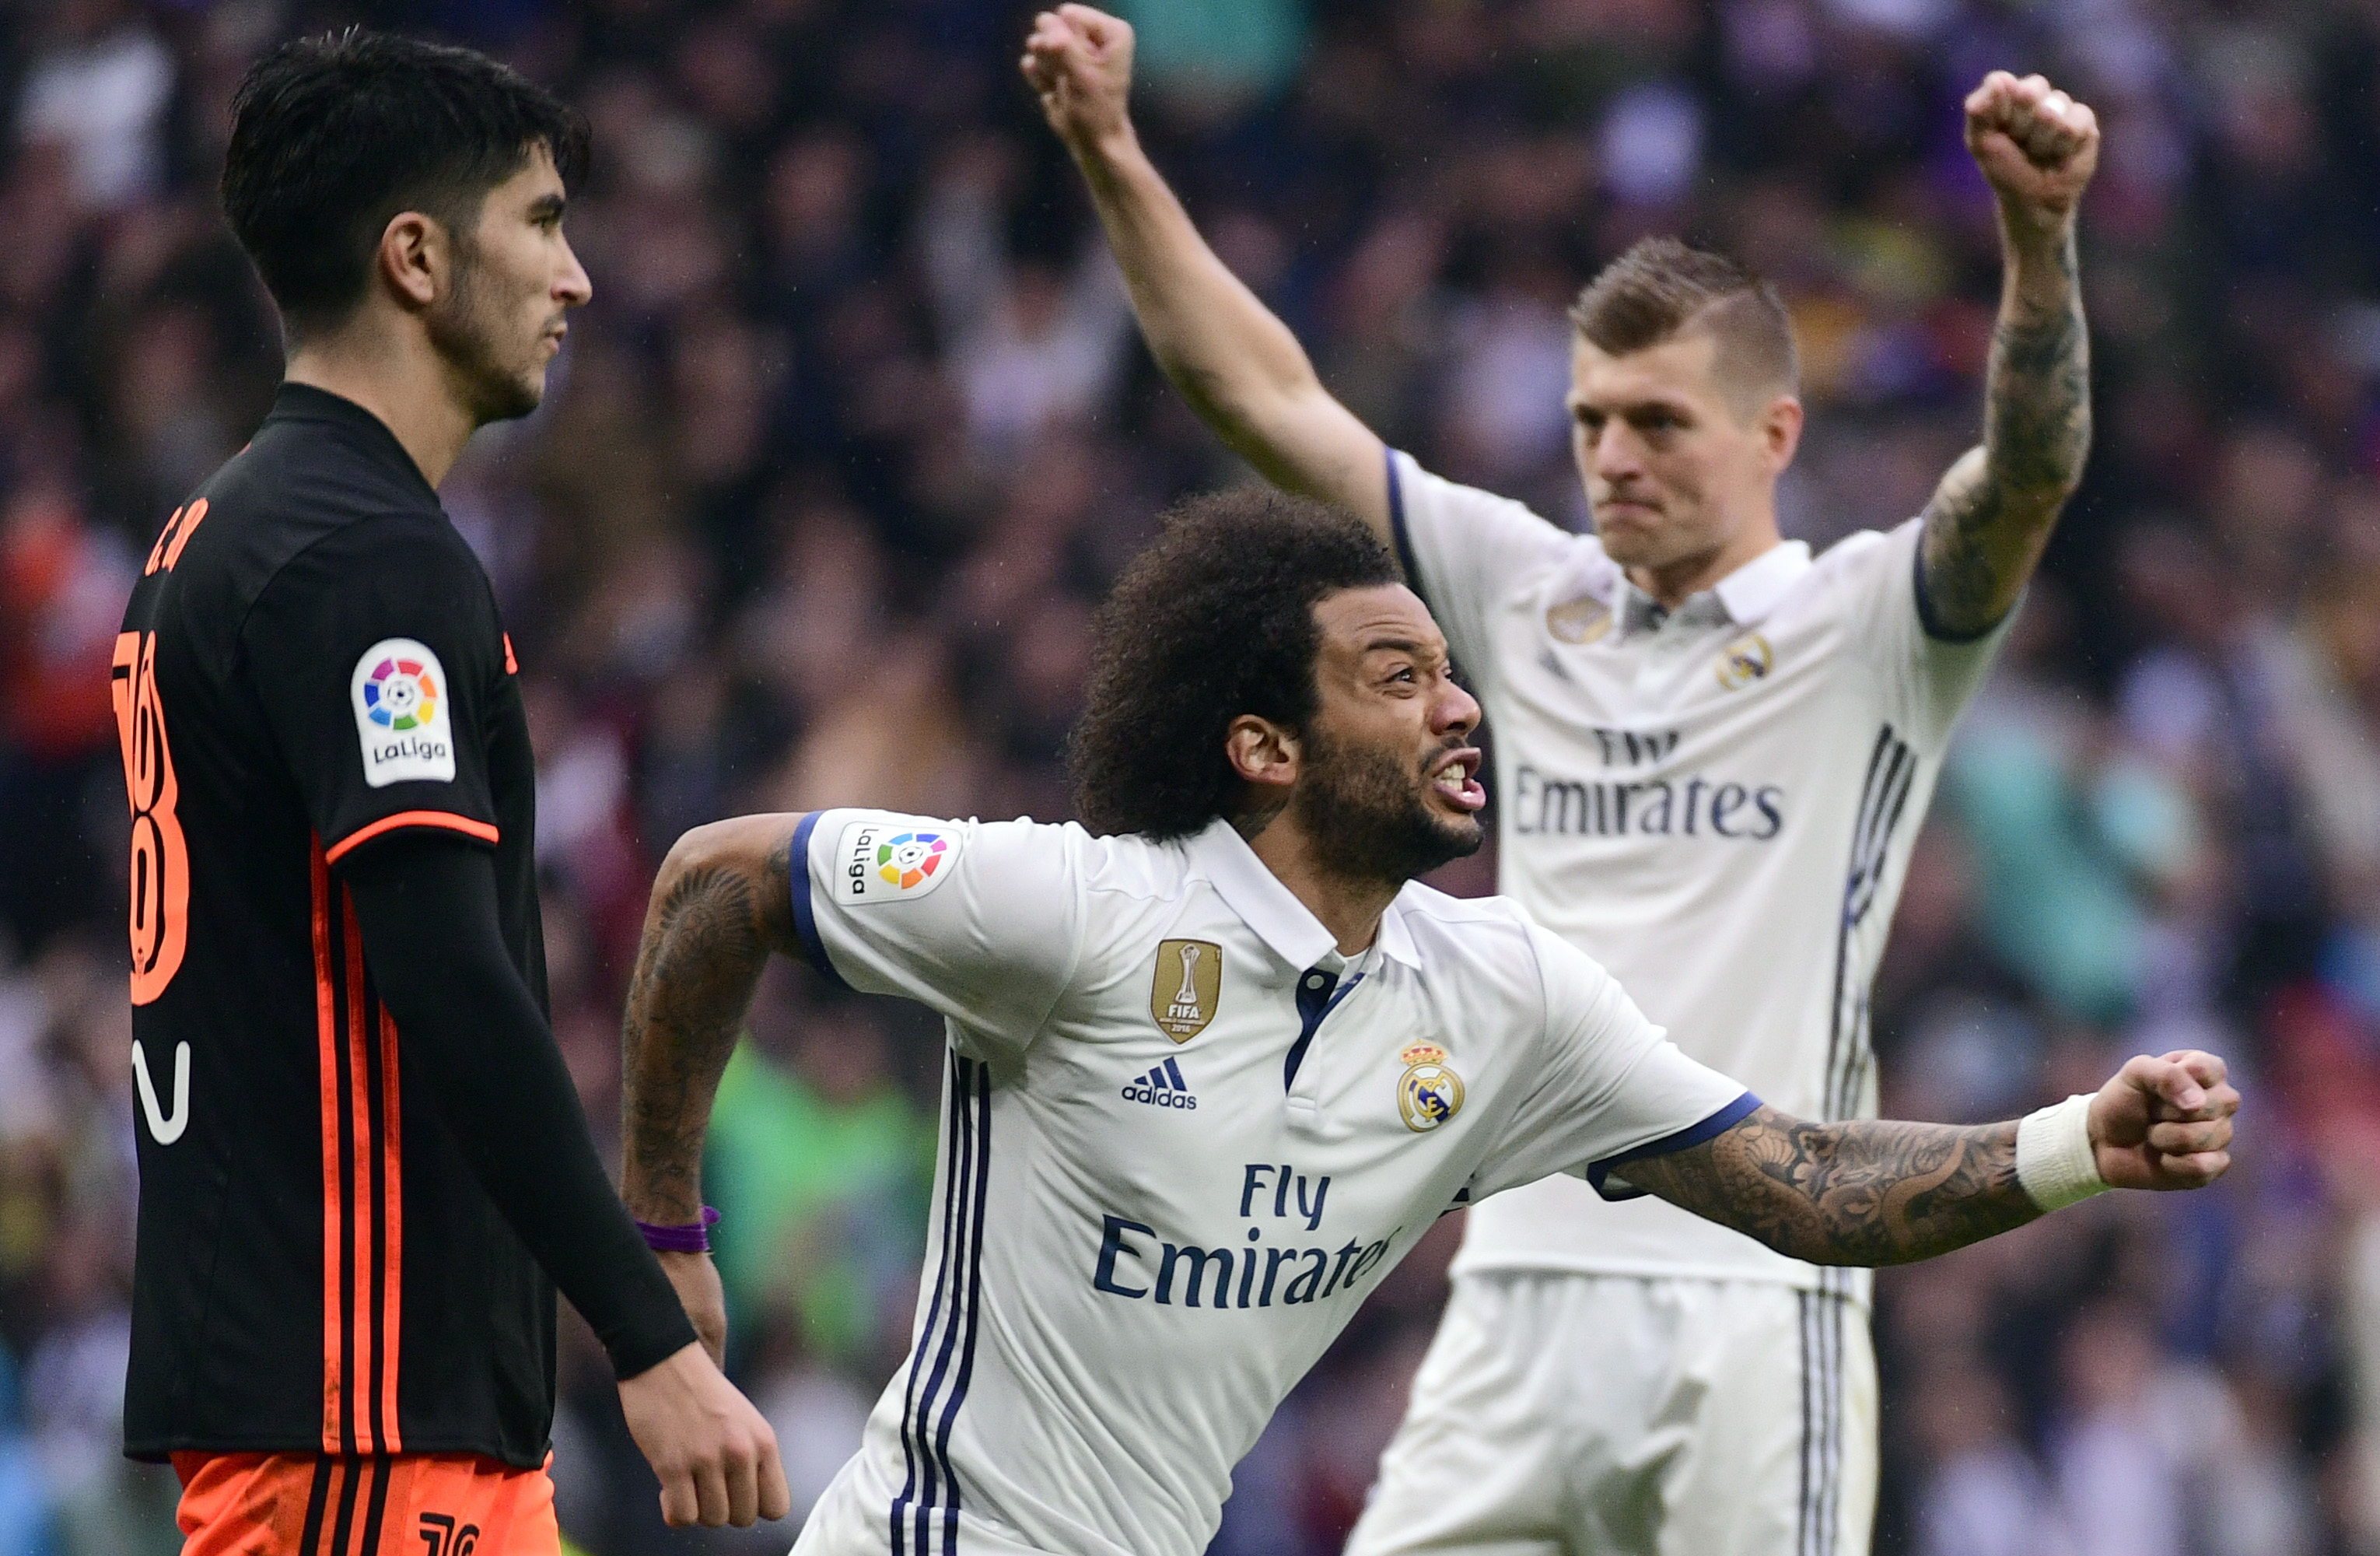 TOPSHOT - Real Madrid's Brazilian defender Marcelo (C) celebrates a goal during the Spanish league football match Real Madrid CF vs Valencia CF at the Santiago Bernabeu stadium in Madrid on April 29, 2017. / AFP PHOTO / PIERRE-PHILIPPE MARCOU (Photo credit should read PIERRE-PHILIPPE MARCOU/AFP/Getty Images)